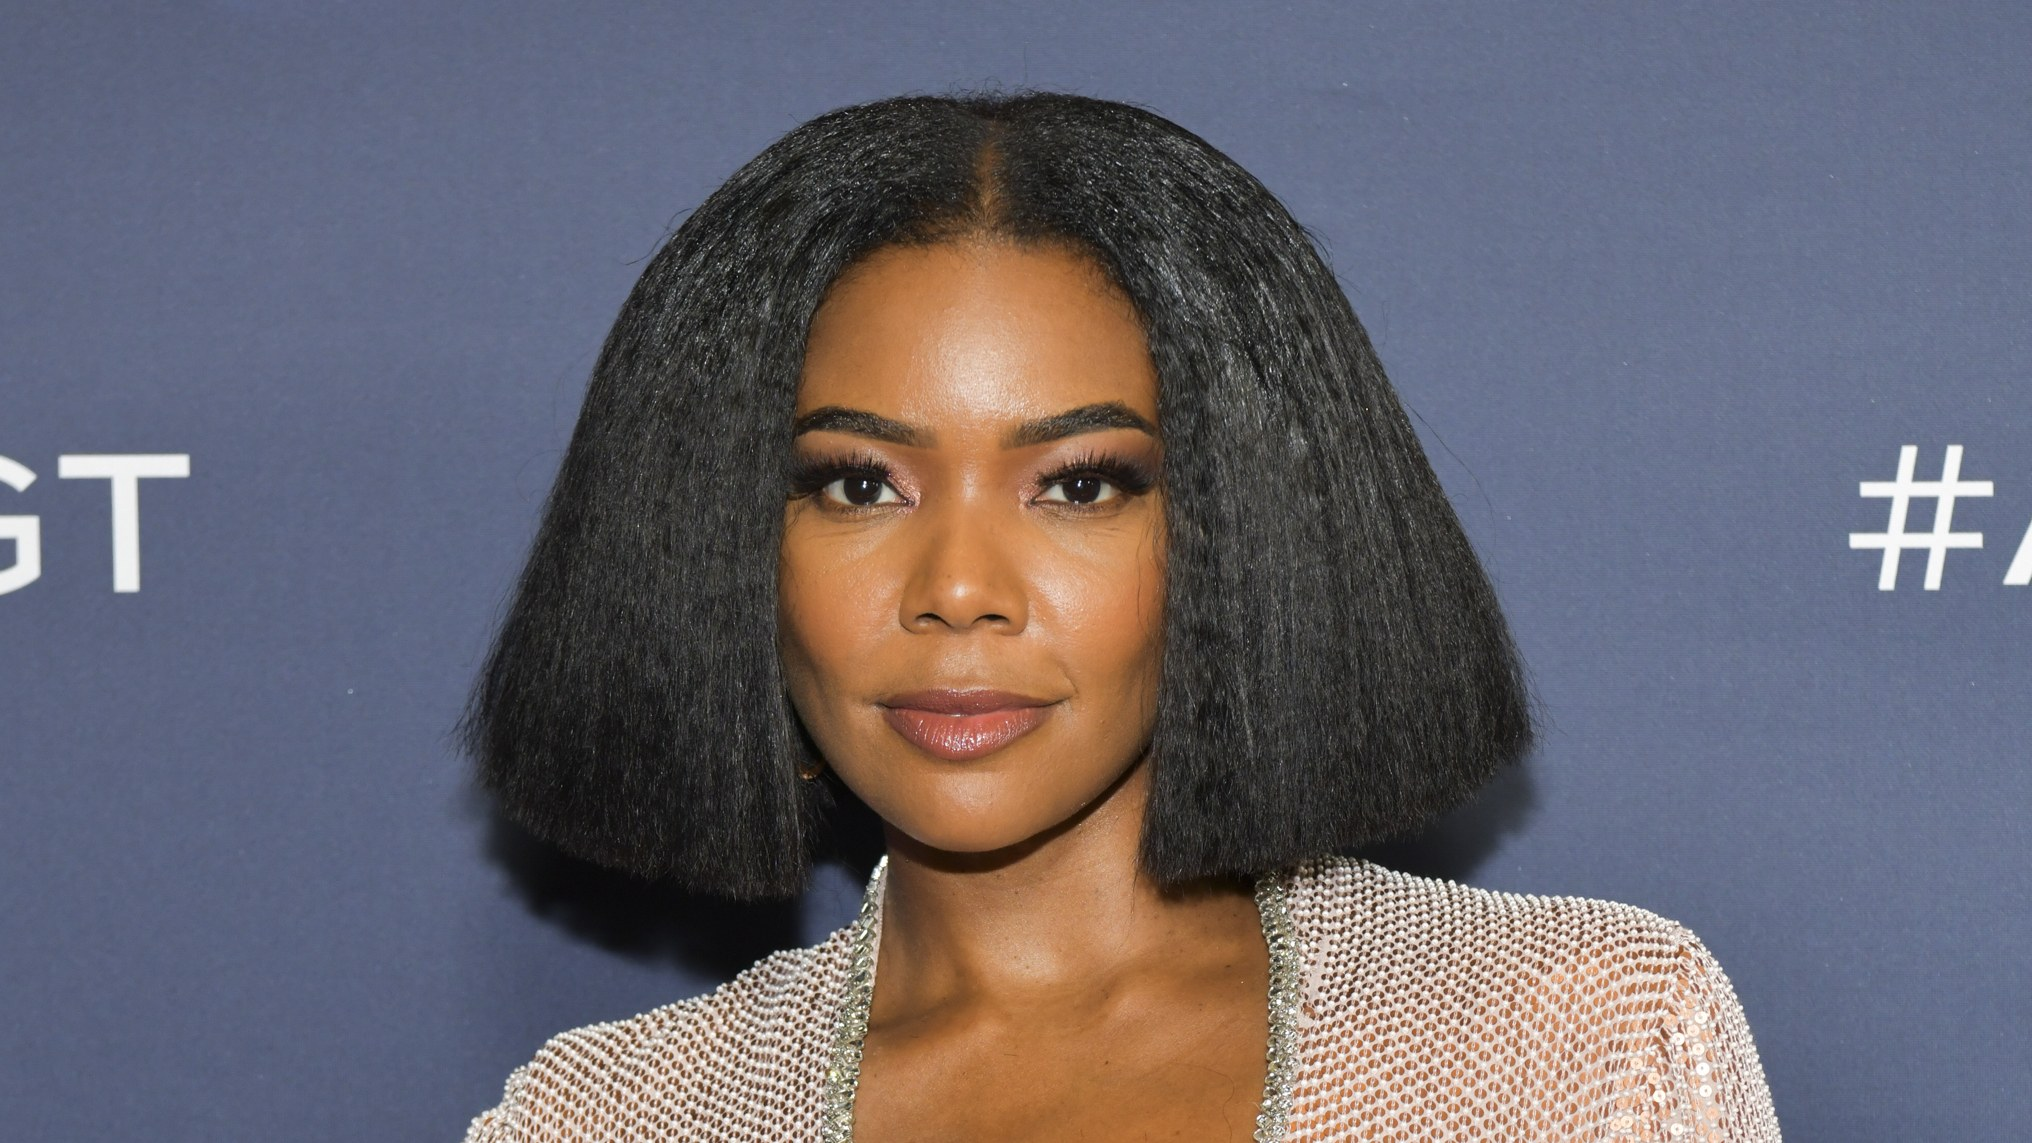 Gabrielle Union speaks out amid reports she's off NBC show